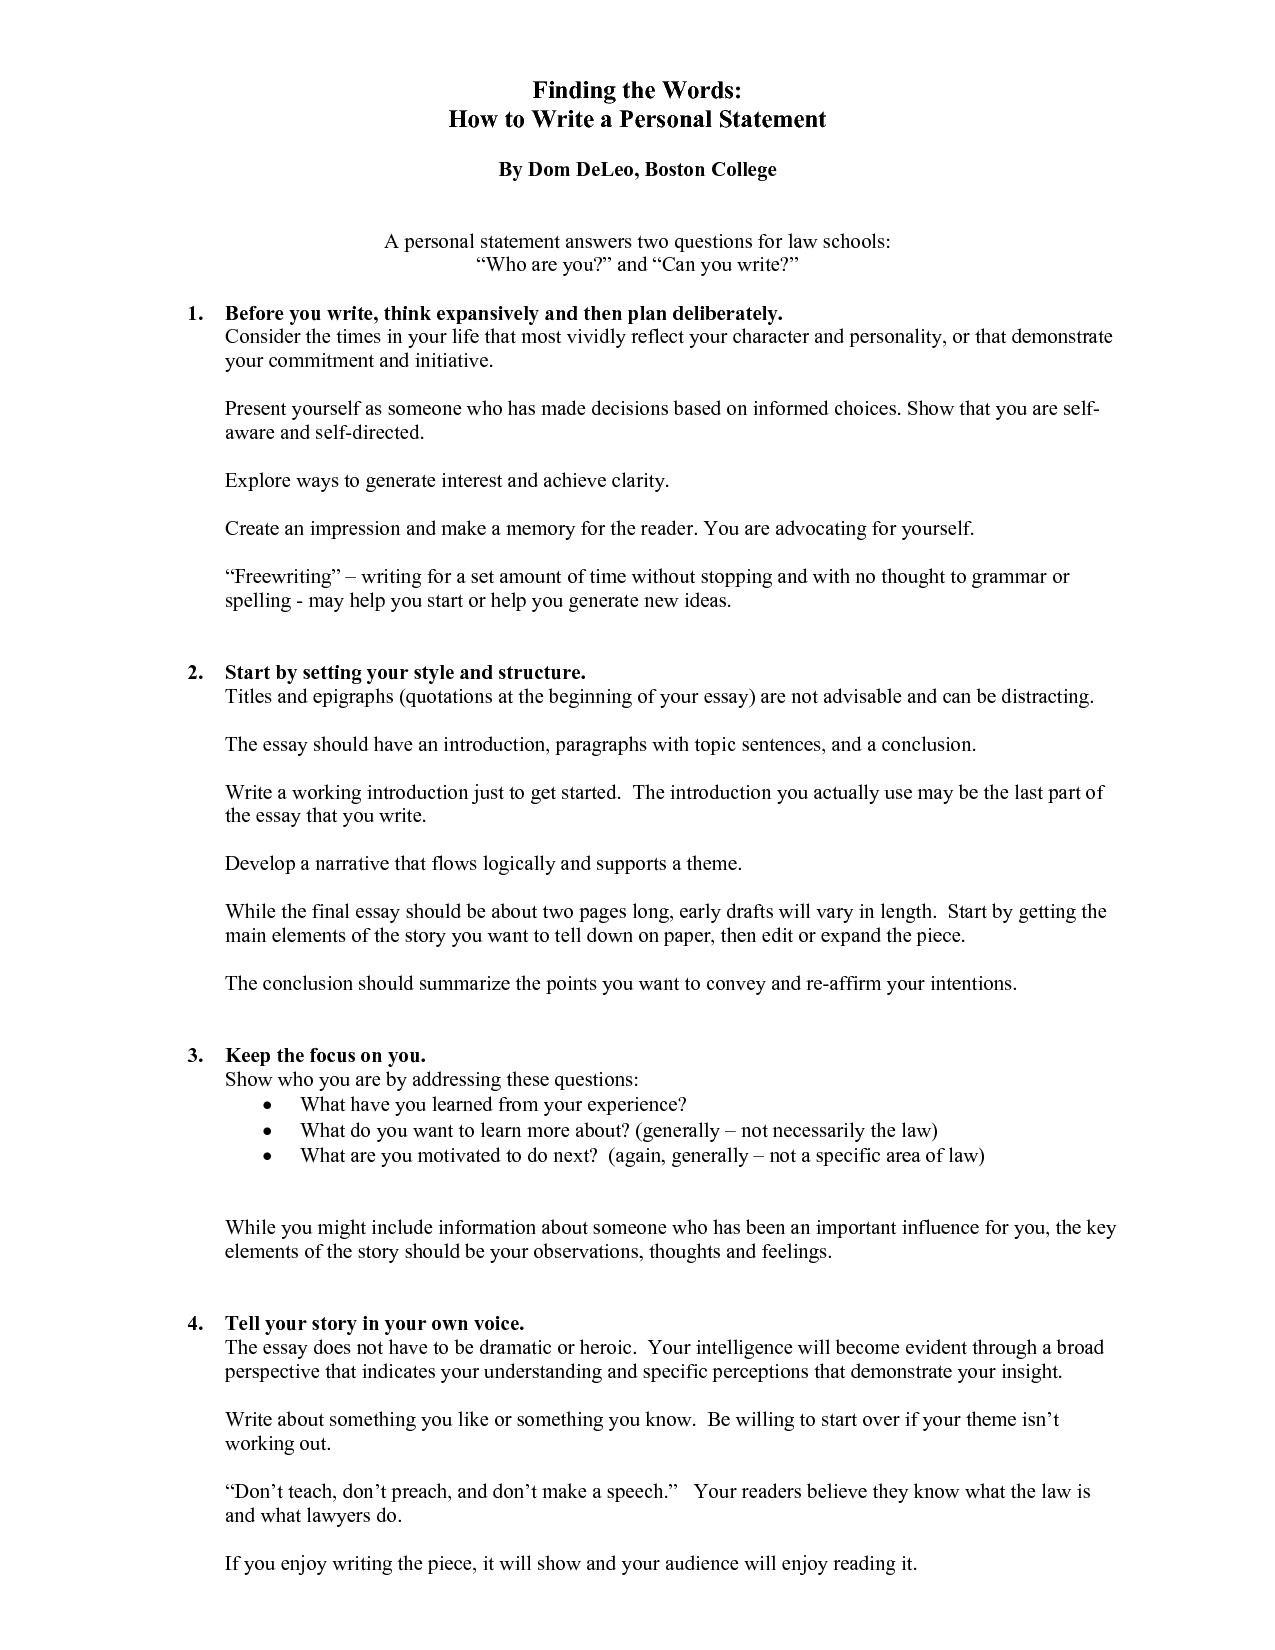 Outcomes statement how to write